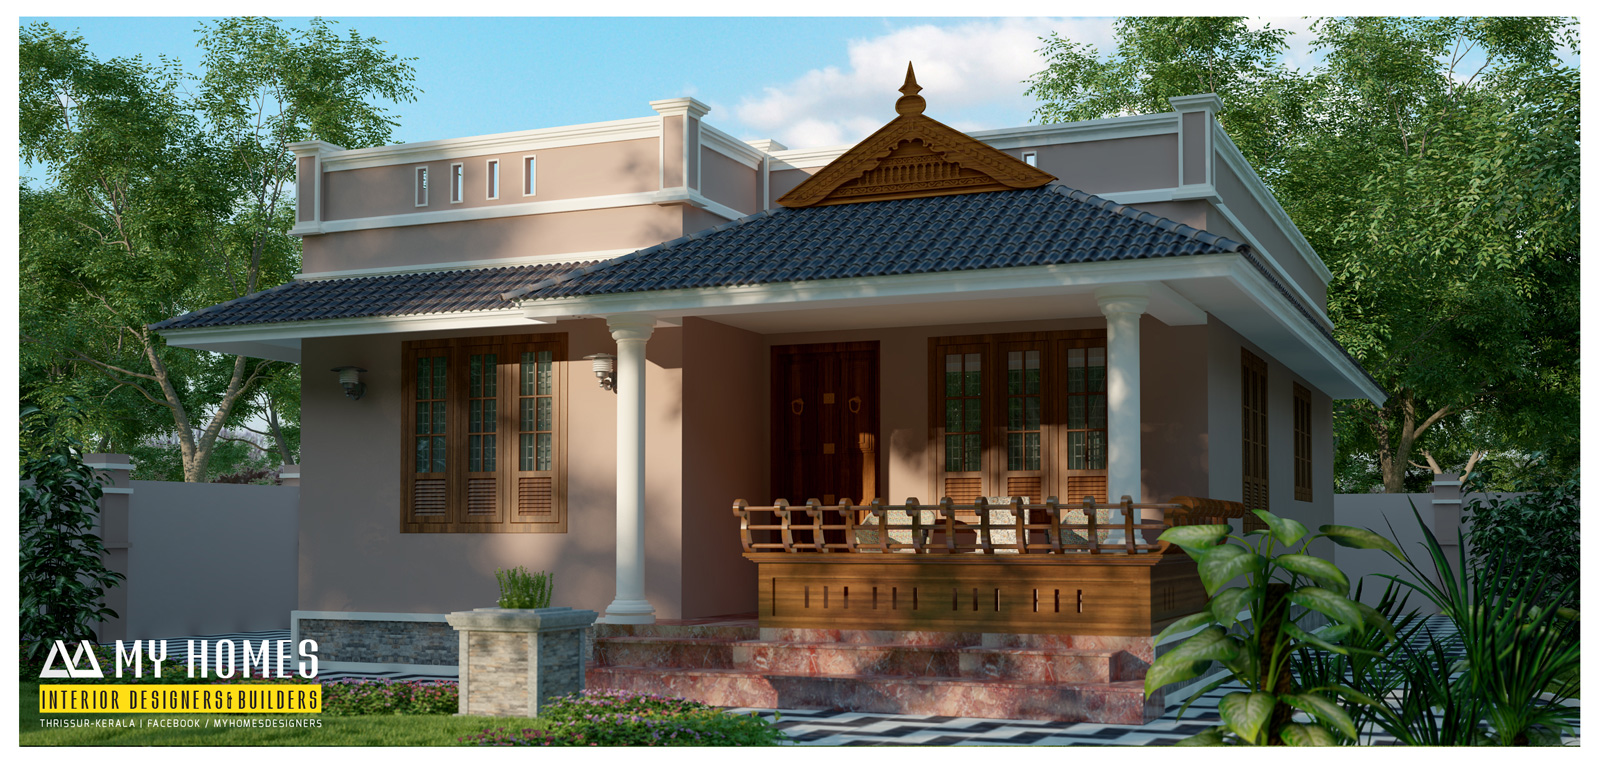 Low budget houses in kerala from my homes designers thrissur for Home plans designs kerala